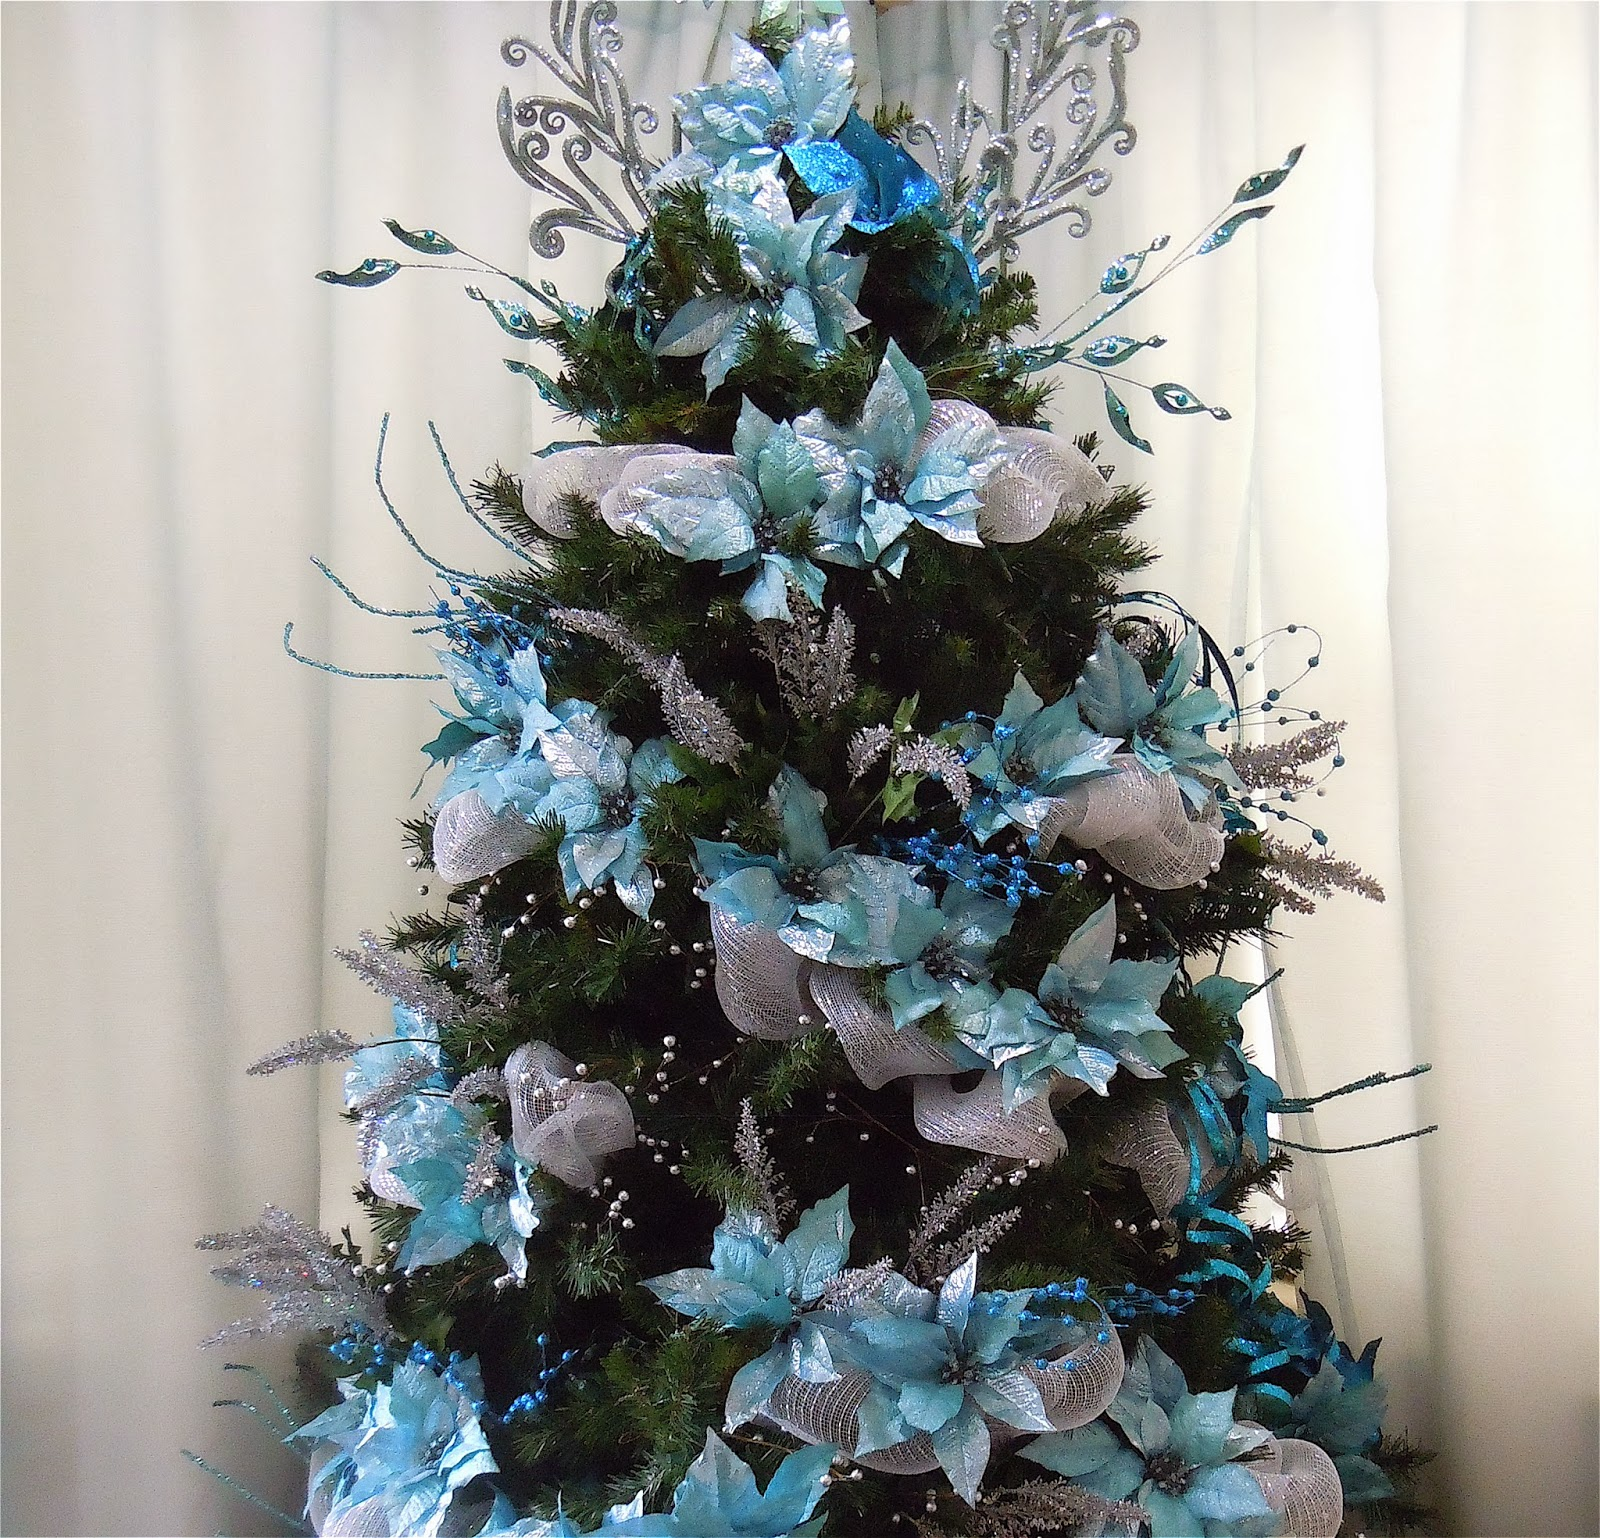 still in the initial stages of decorating just with turquoise poinsettias silver and blue picks no ornaments yet and it looks full already - Teal And Silver Christmas Decorations